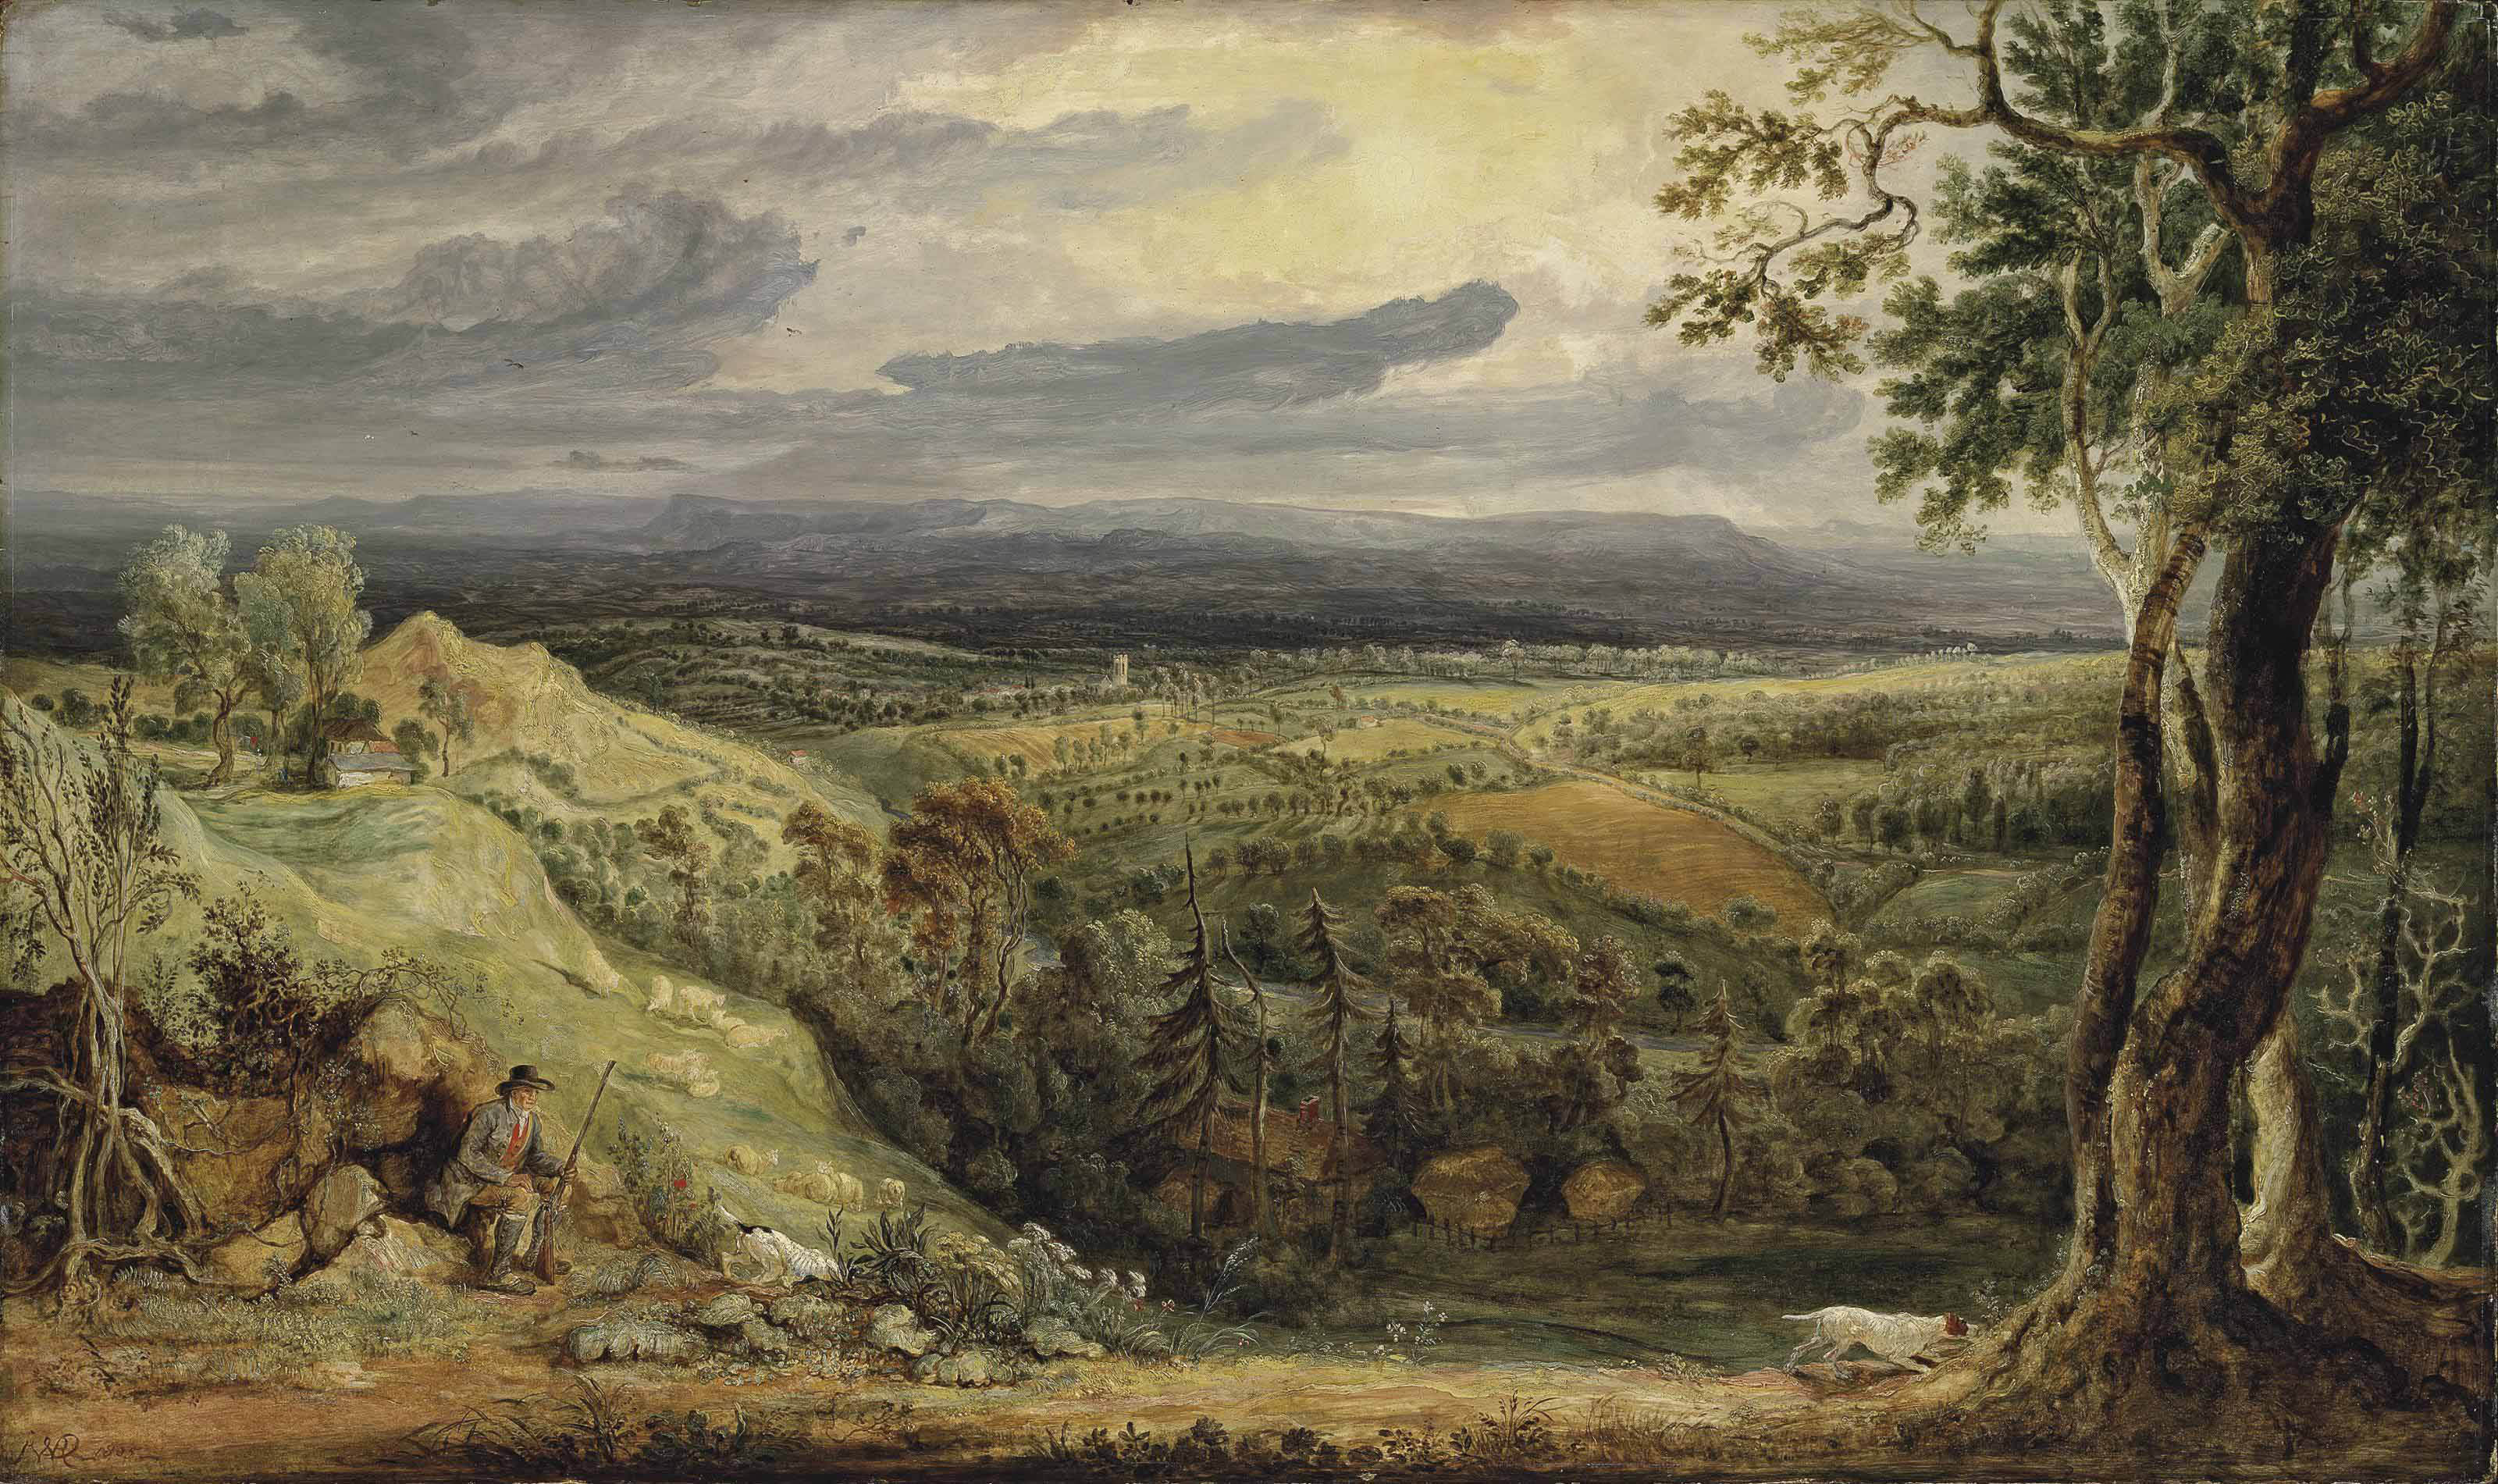 A view in Somersetshire from Fitzhead, the Seat of Lord Somerville